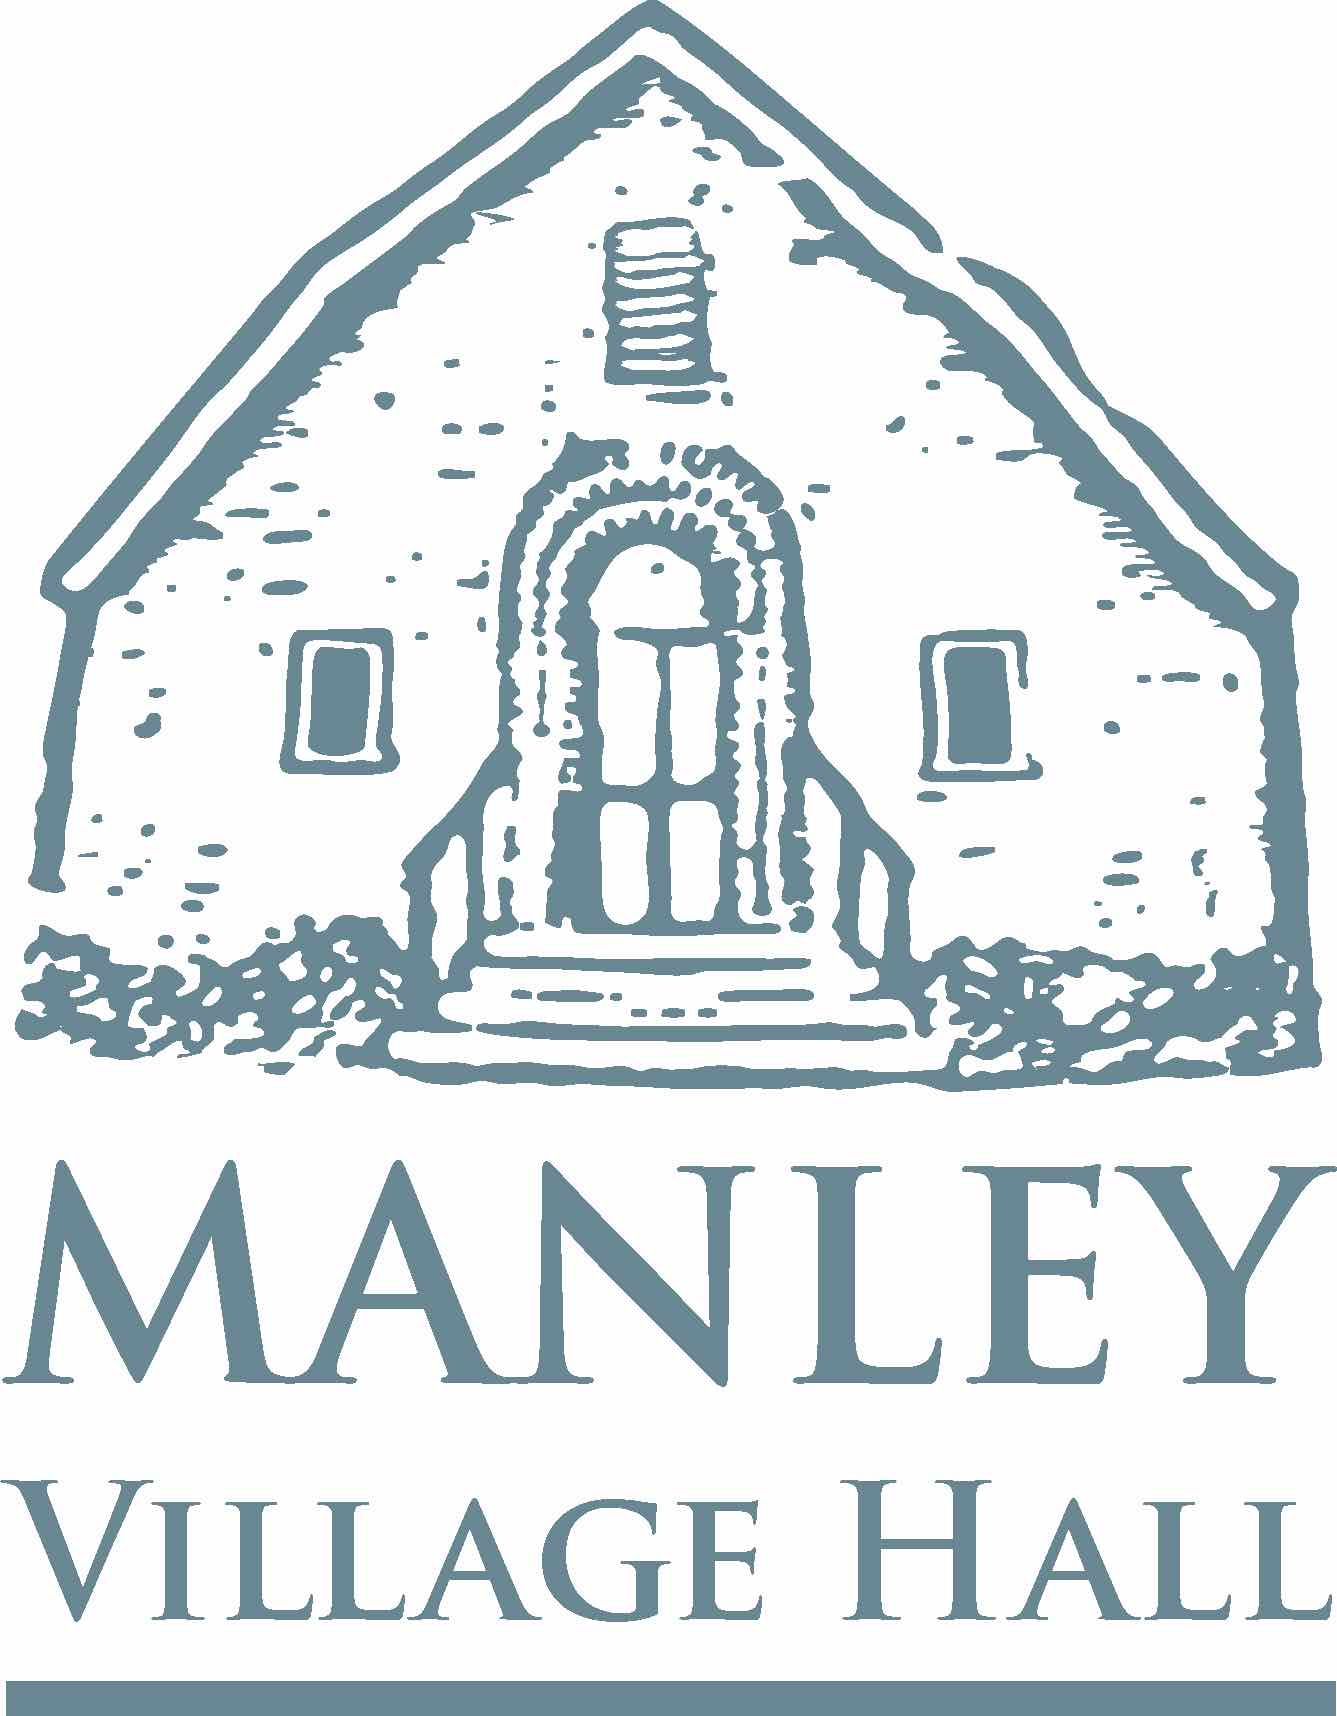 Manley Village Hall